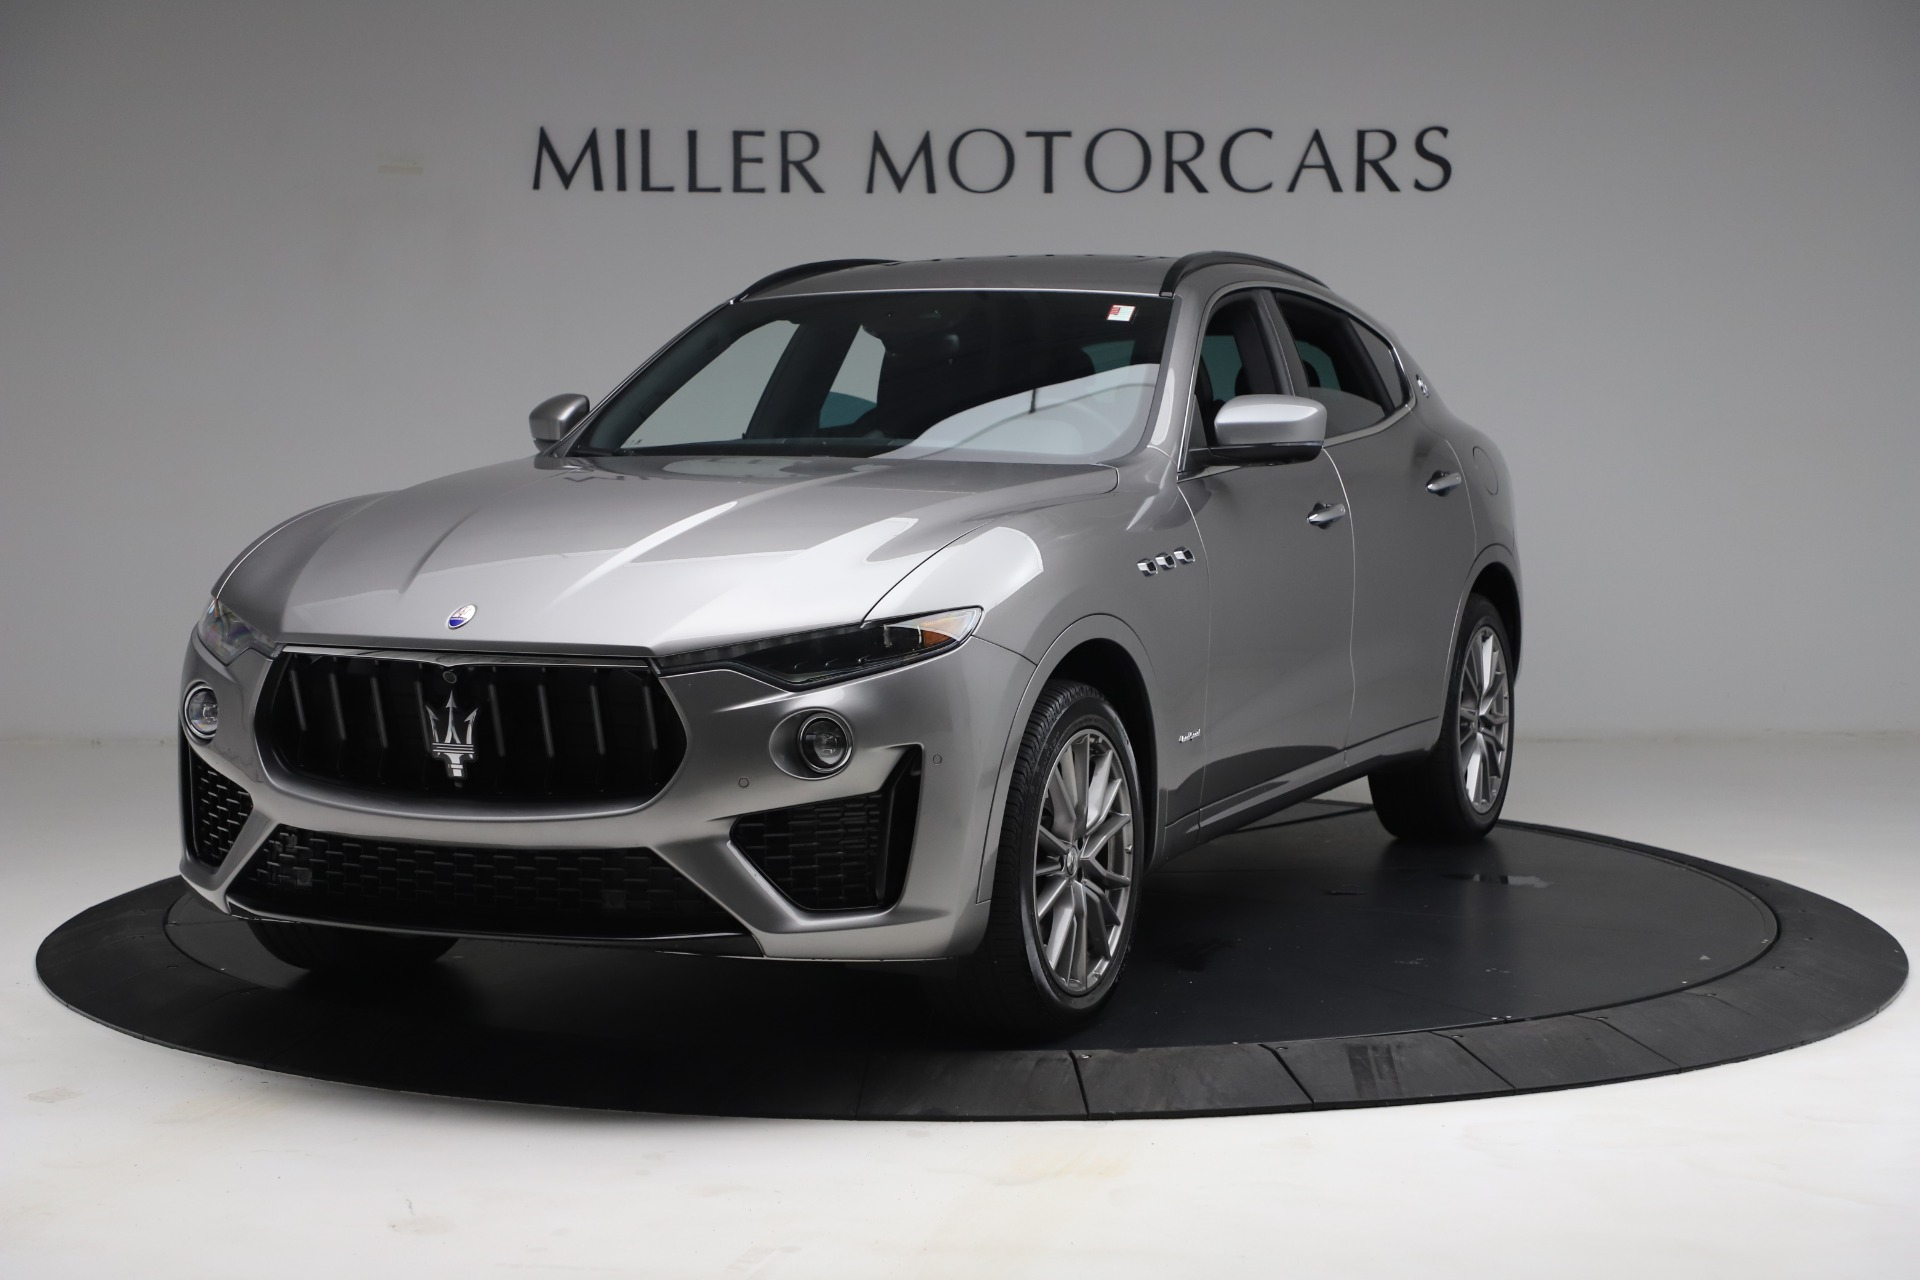 New 2021 Maserati Levante GranSport for sale $73,900 at Bentley Greenwich in Greenwich CT 06830 1